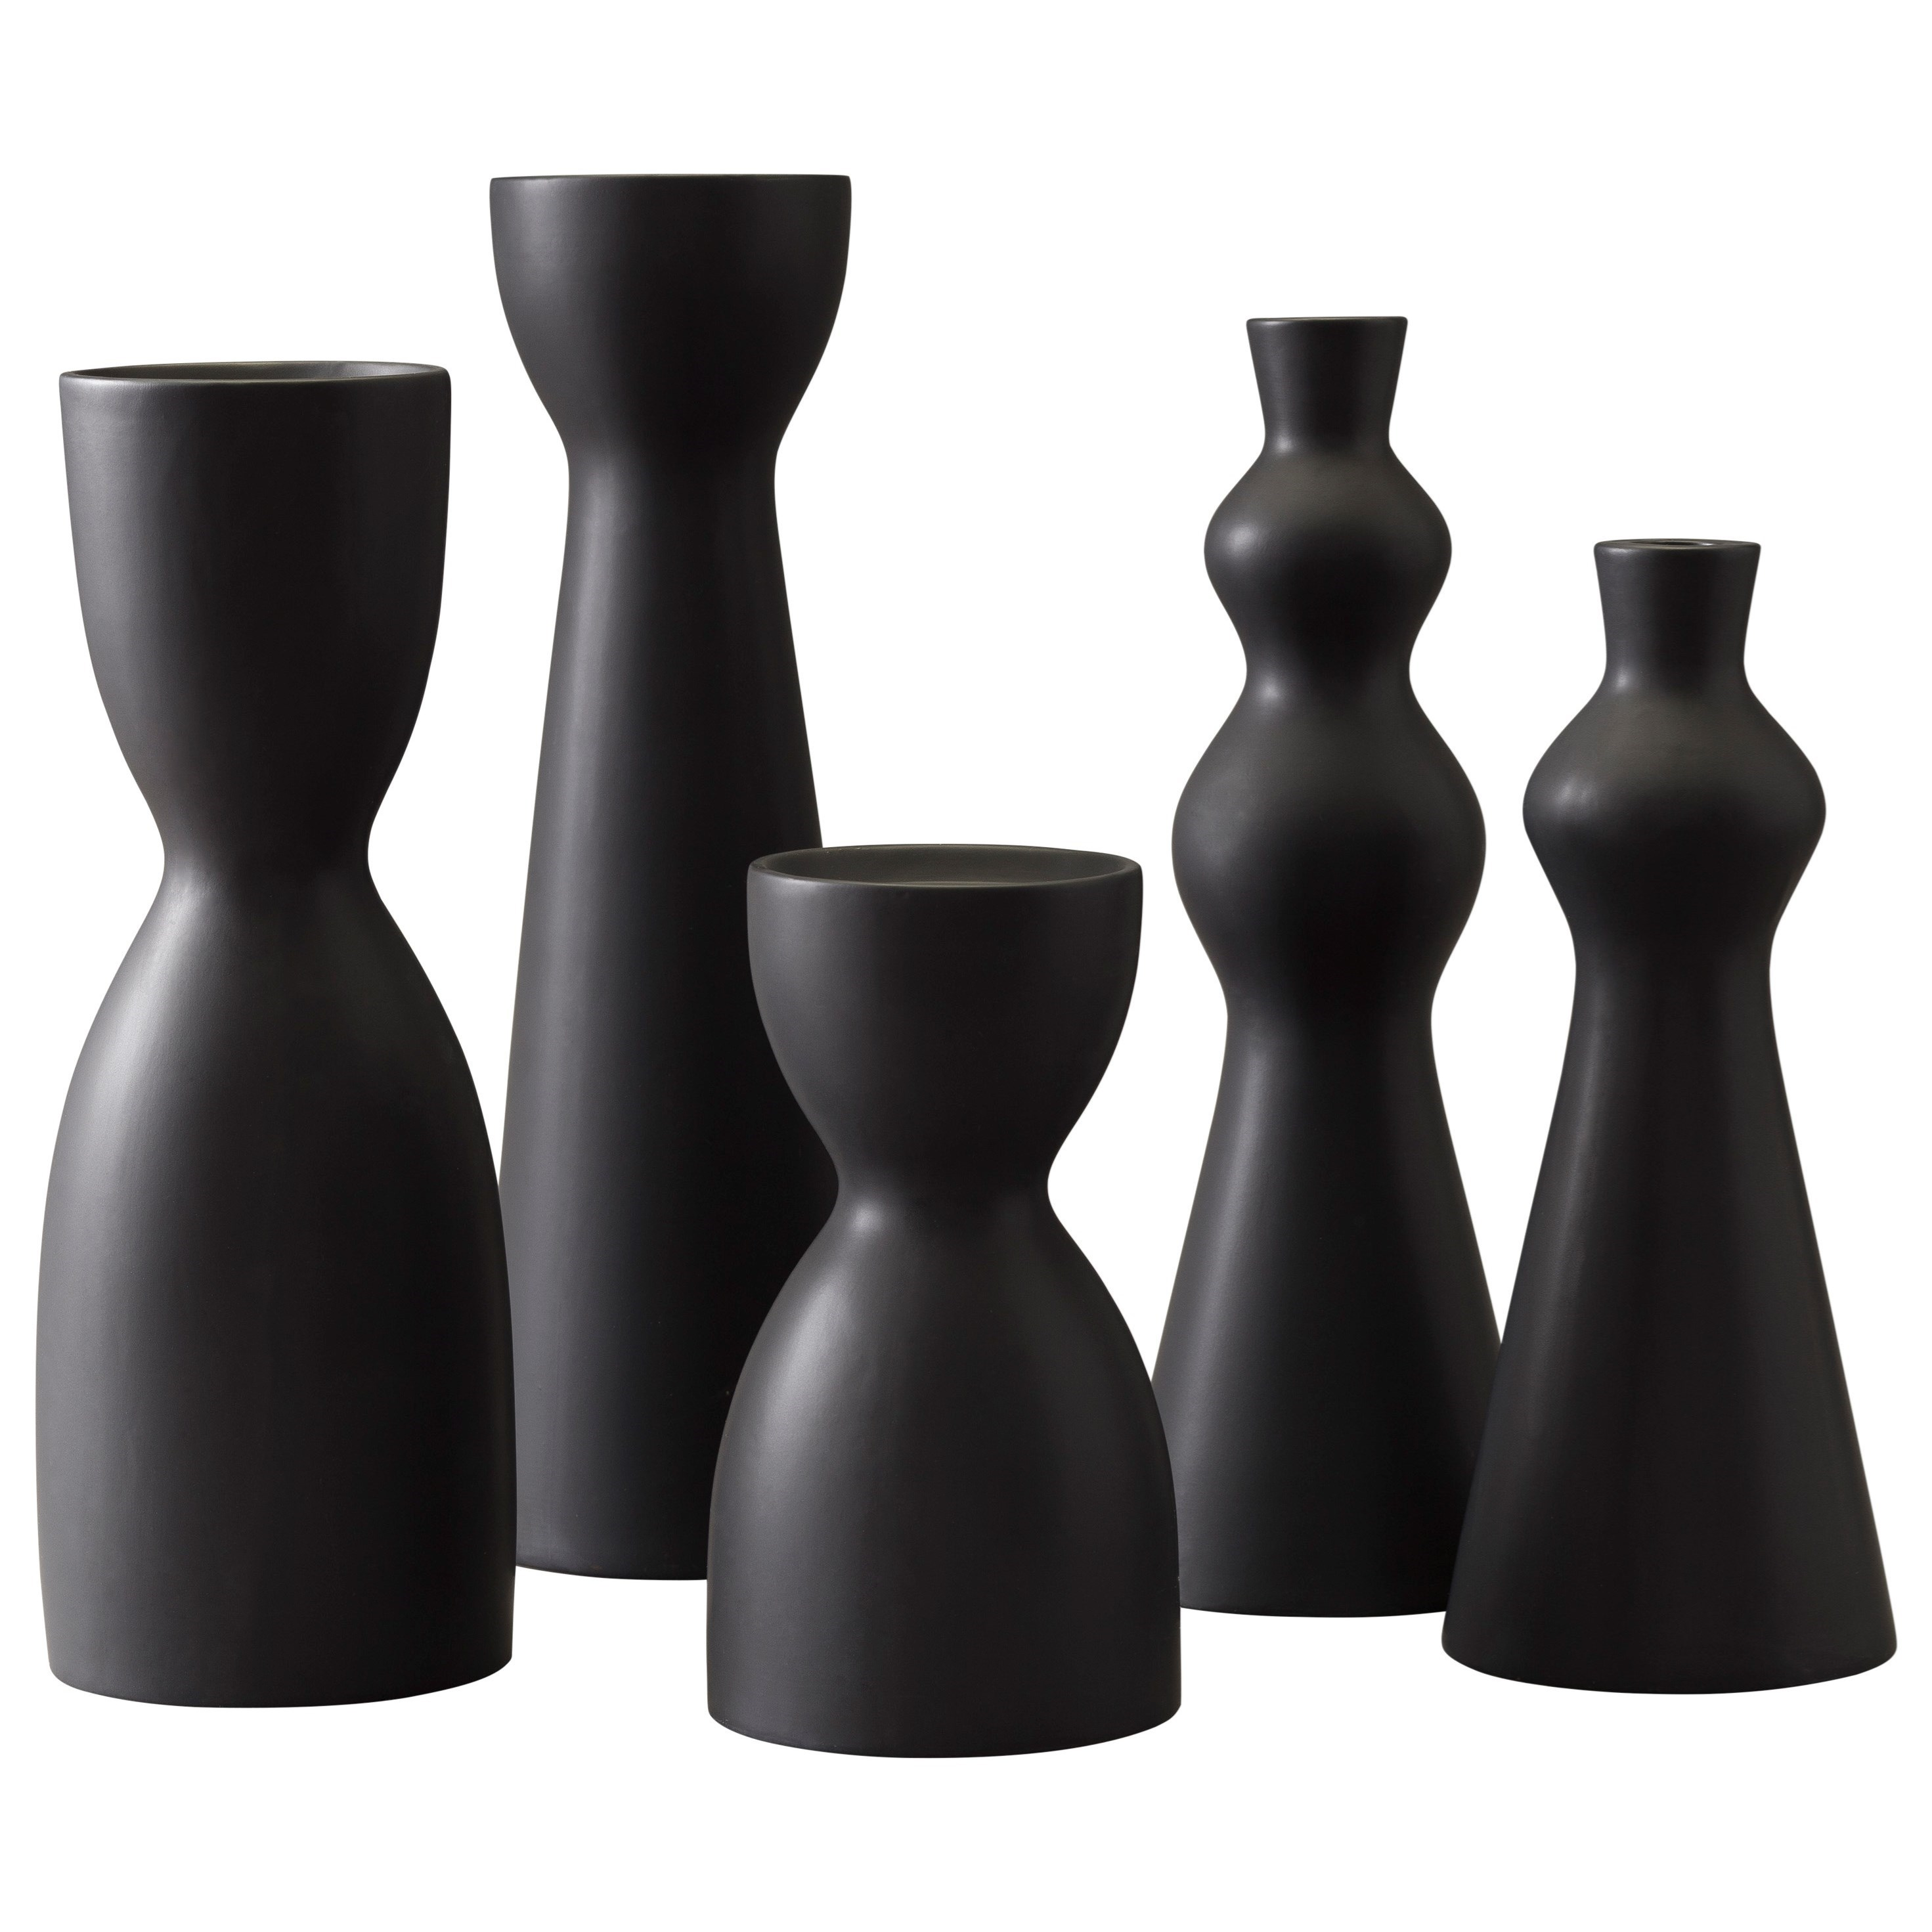 Signature Design by Ashley Accents Destry Black Candle Holders (Set of 5) - Item Number: A2C00126